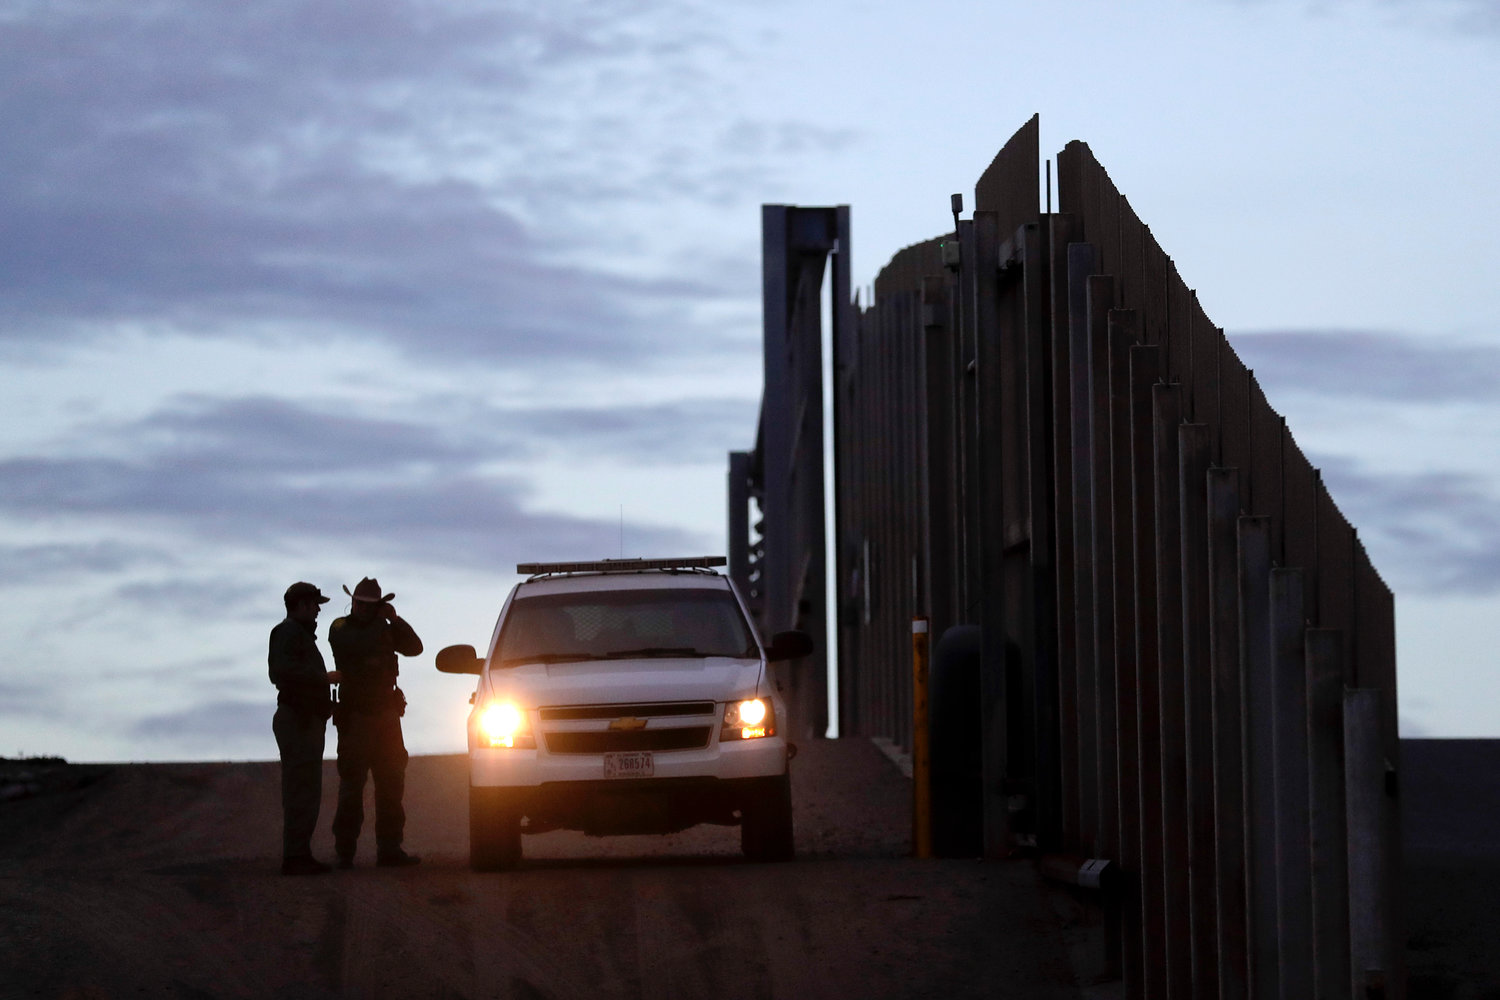 In this Nov. 21, 2018 file photo, United States Border Patrol agents stand by a vehicle near one of the border walls separating Tijuana, Mexico and San Diego, in San Diego. As of this week, the ACLU has filed nearly 400 lawsuits and other legal actions against the Trump administration, some meeting with setbacks but many resulting in important victories. Of the lawsuits, 174 have dealt with immigrant rights, targeting the family separation policy, detention and deportation practices, and the administration's repeated attempts to make it harder to seek asylum at the U.S.-Mexico border.  (AP Photo/Gregory Bull, File)